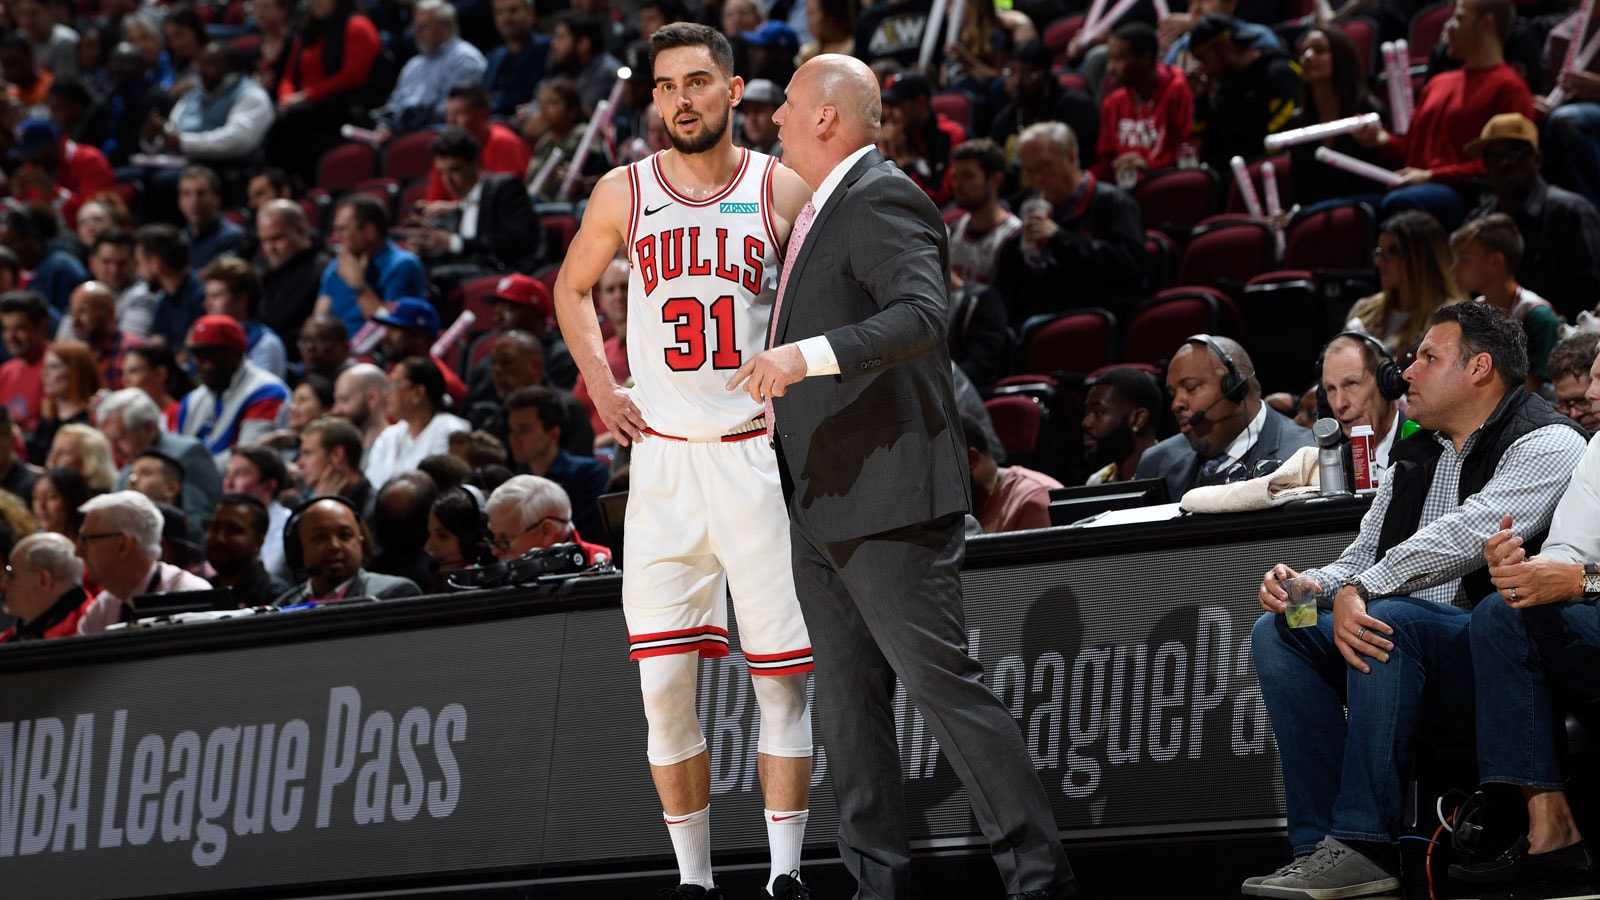 Tomas Satoransky and Coach Boylen discussing plays on the sidelines